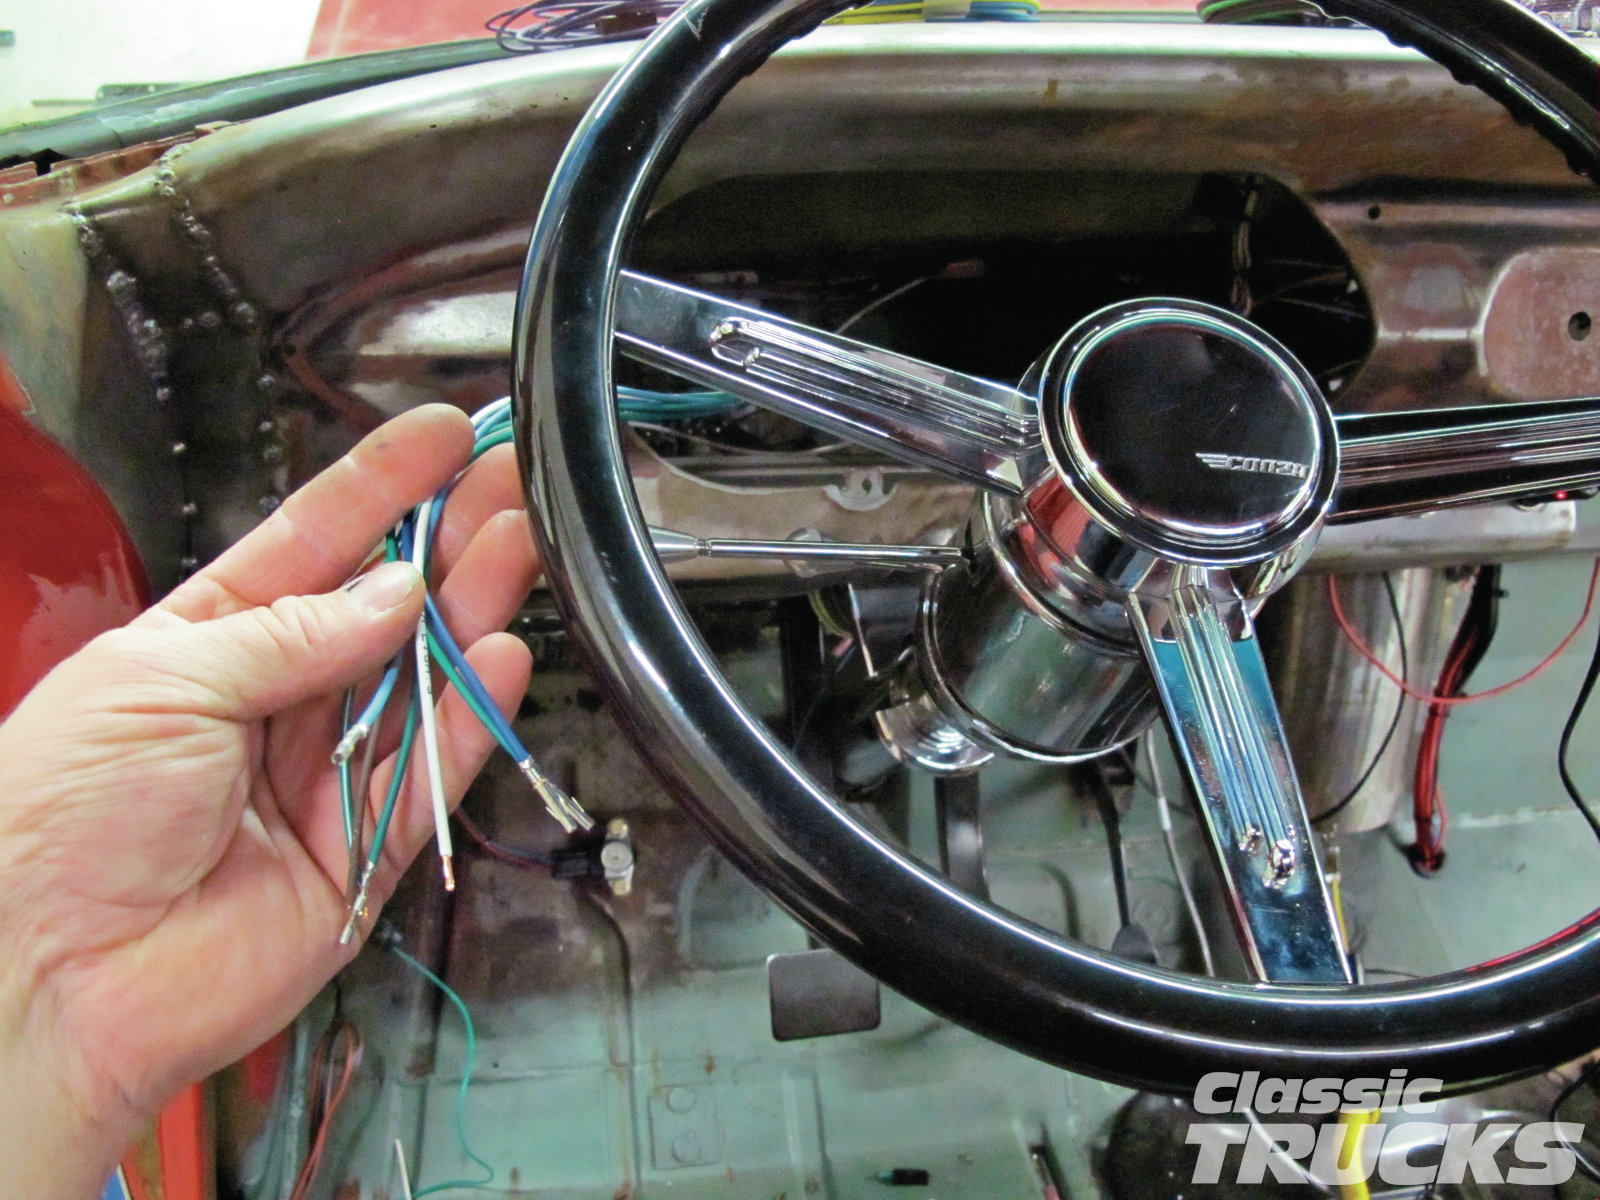 09. I removed the instrument cluster and ran all wire for the gauges through the hole. This way when wiring the instrument cluster I could have all the wires in a general location.